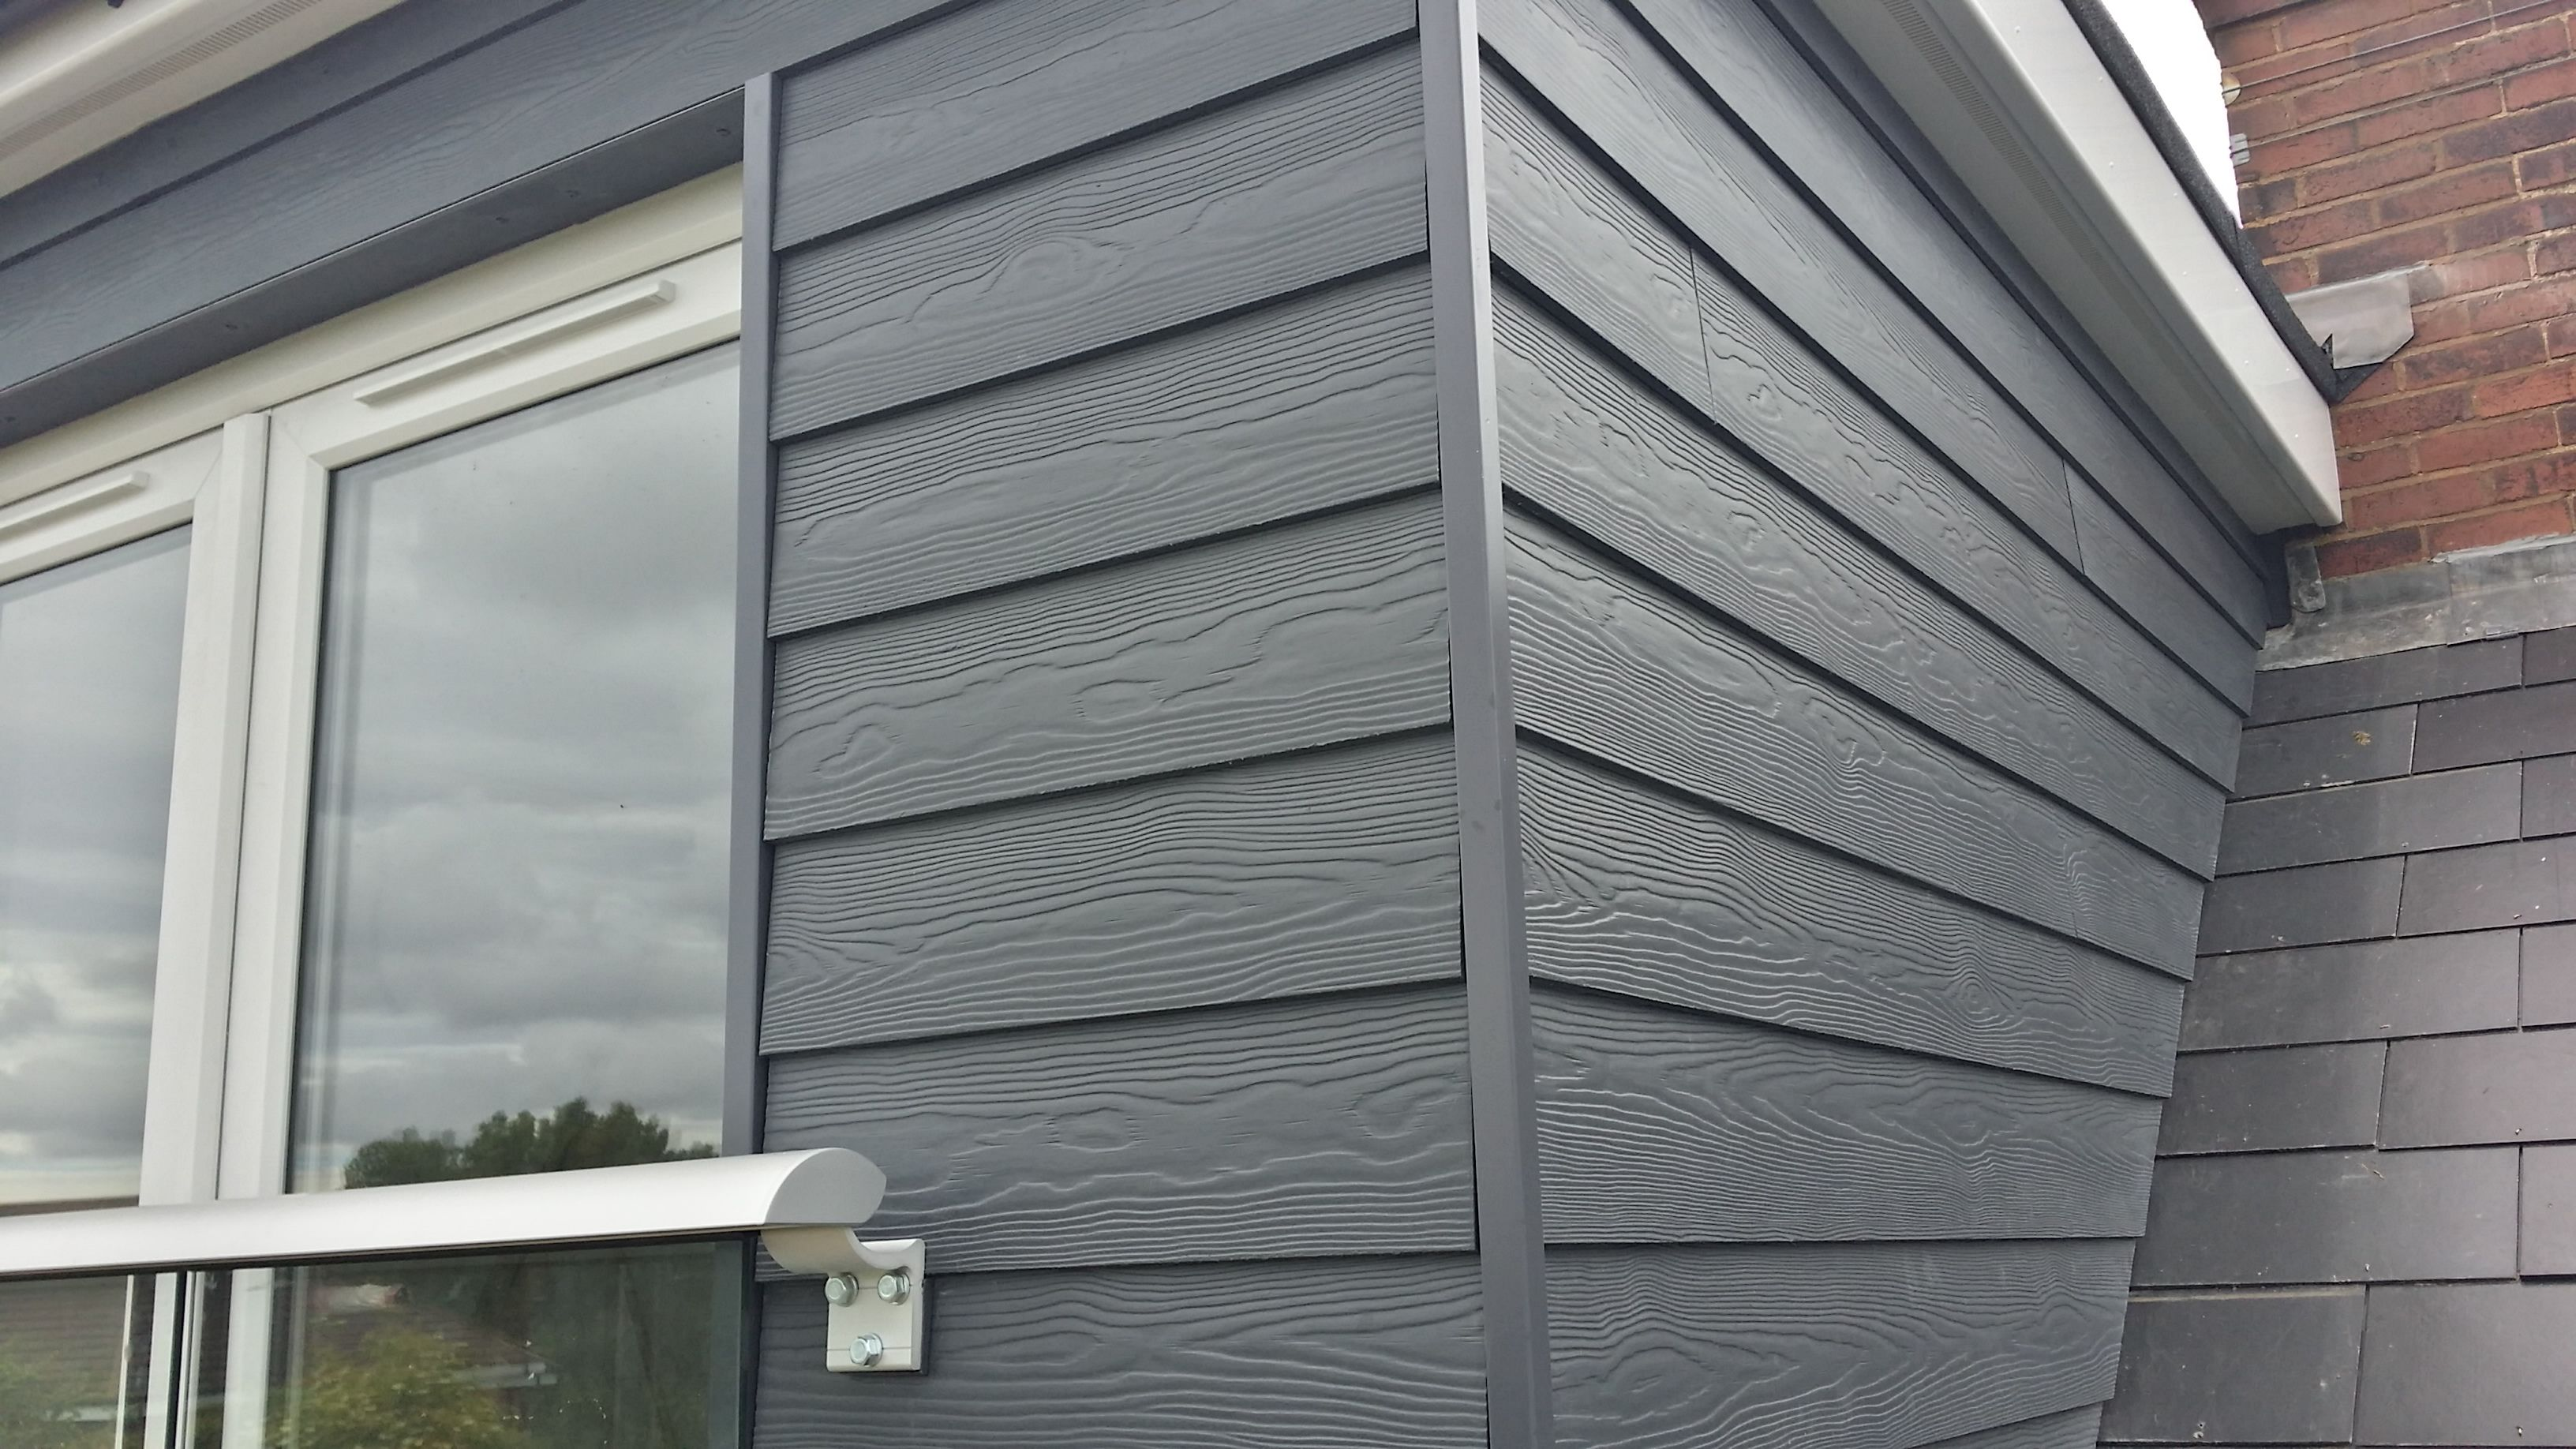 Eternit Fassade Cedral Erfahrung Fibre Cement Cedral Weatherboard External Cladding Is The Ideal